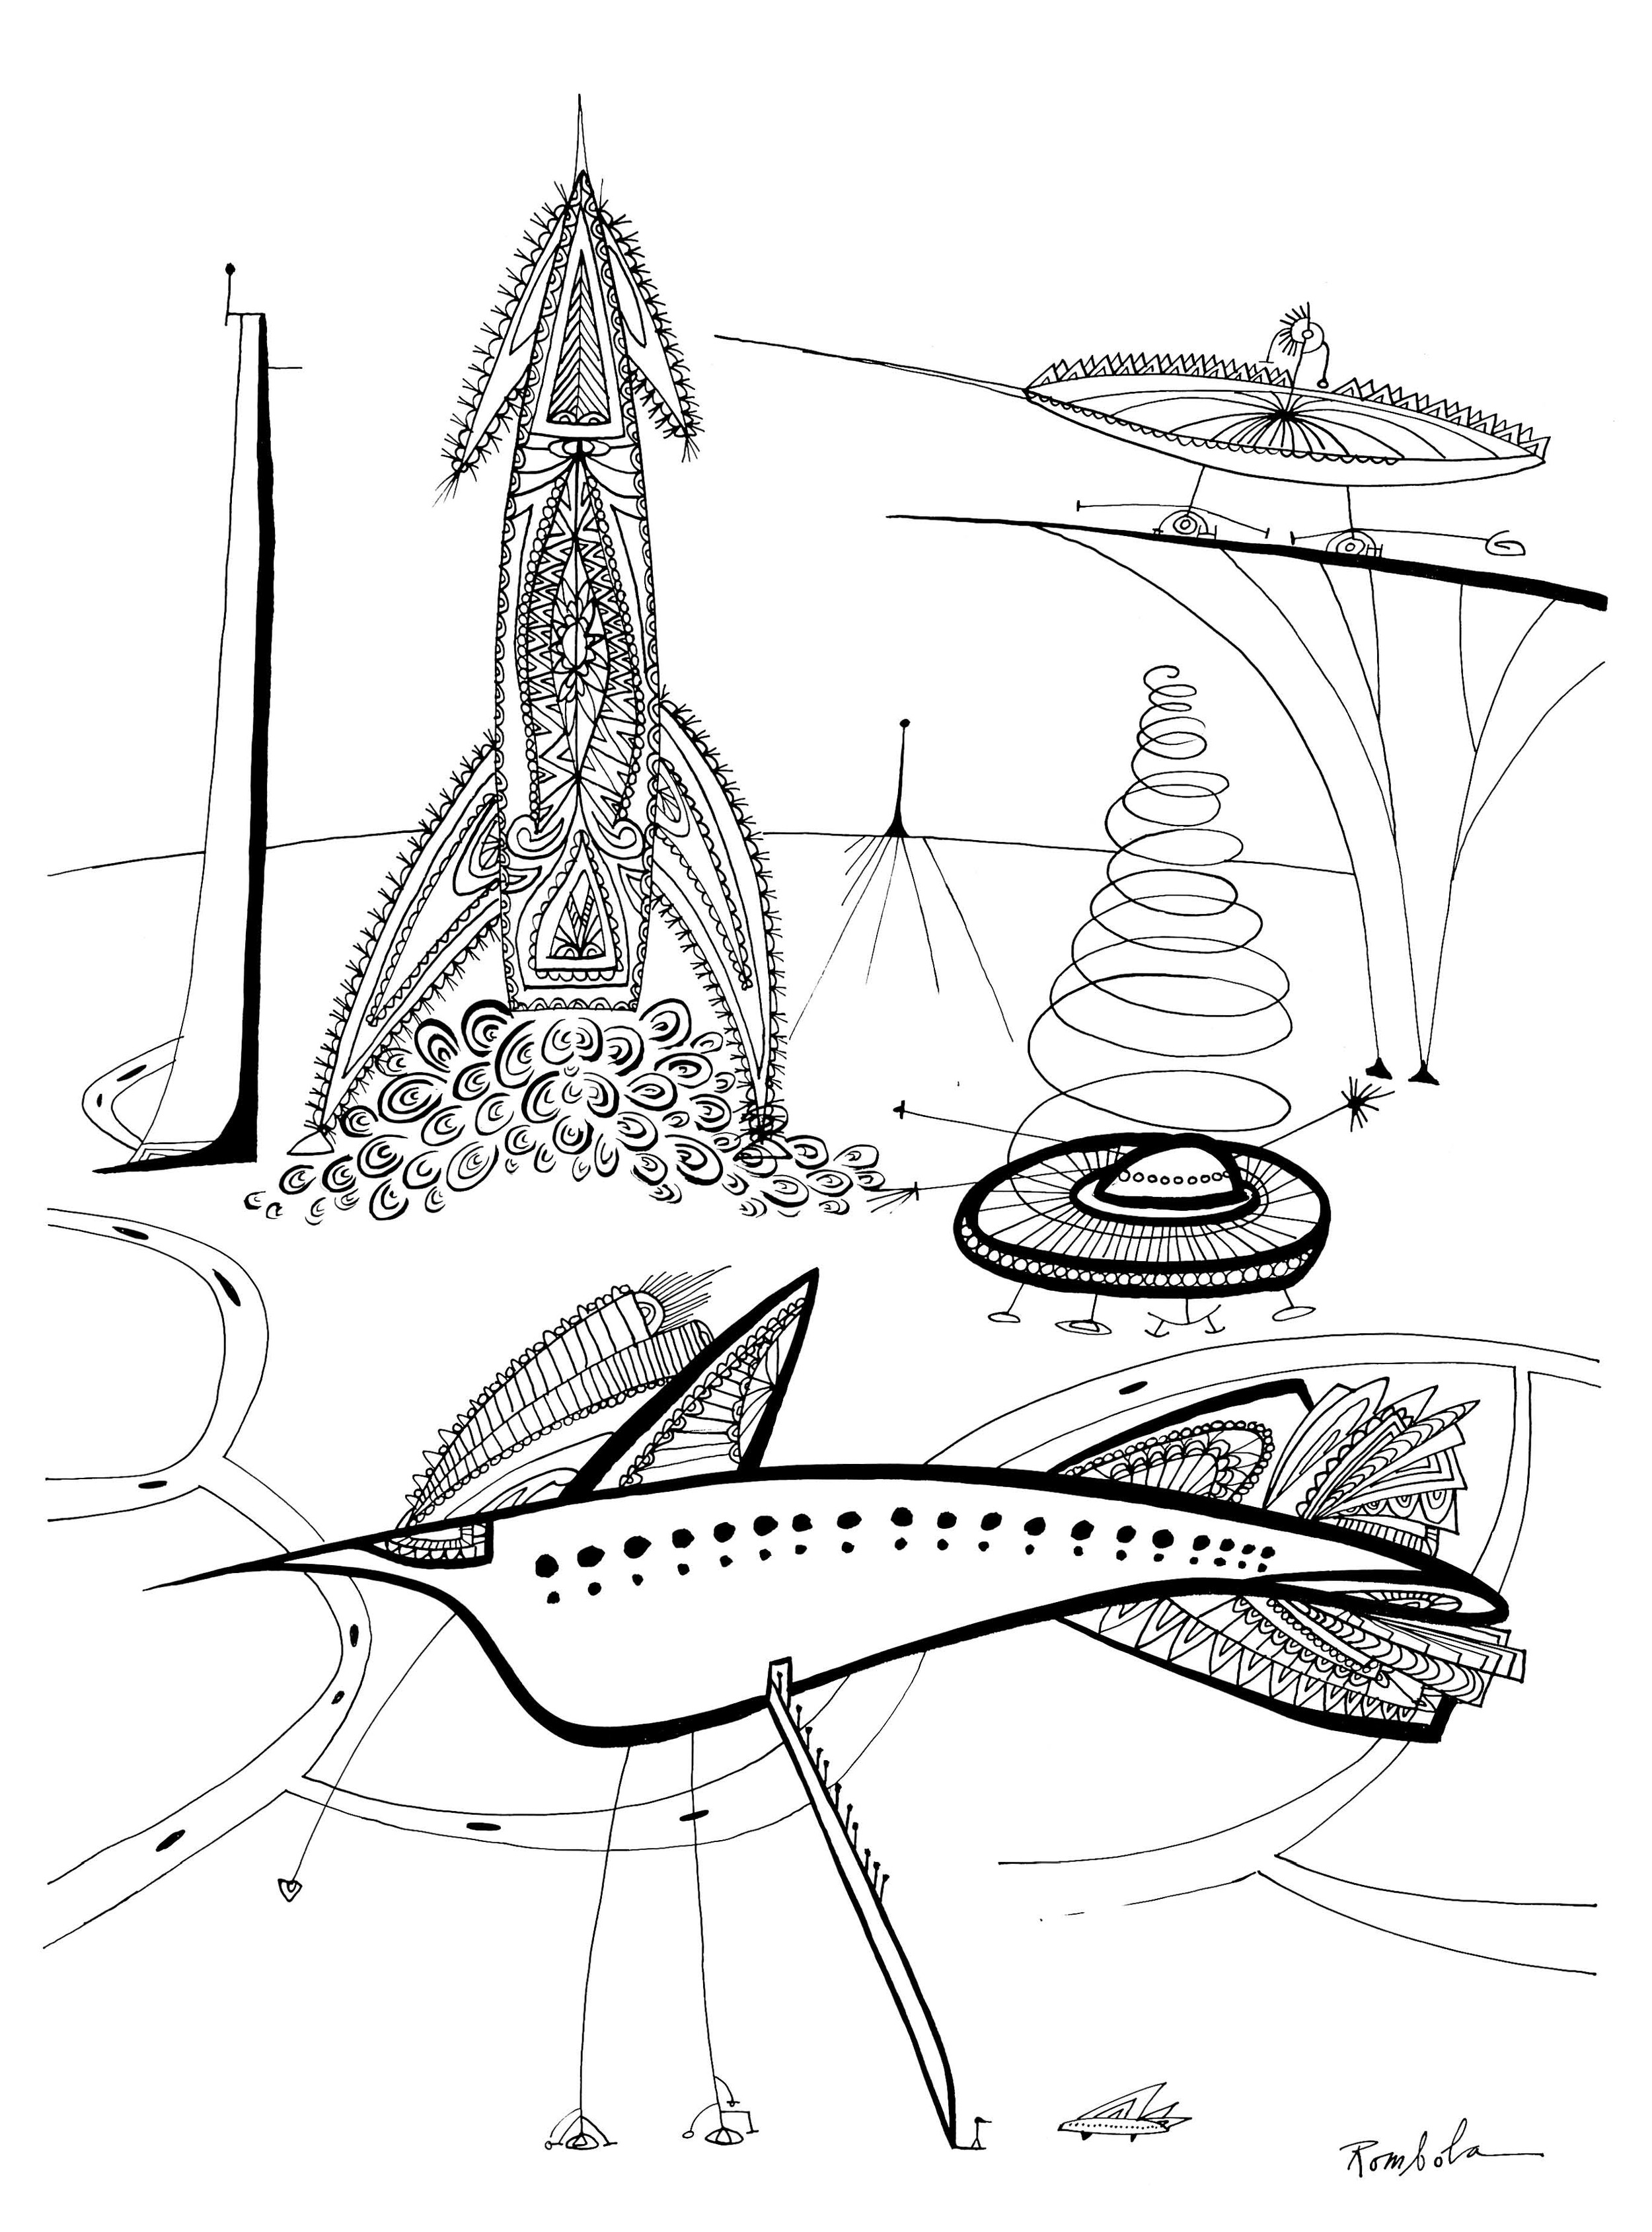 Outer Space Airport   Ink on paper  1967